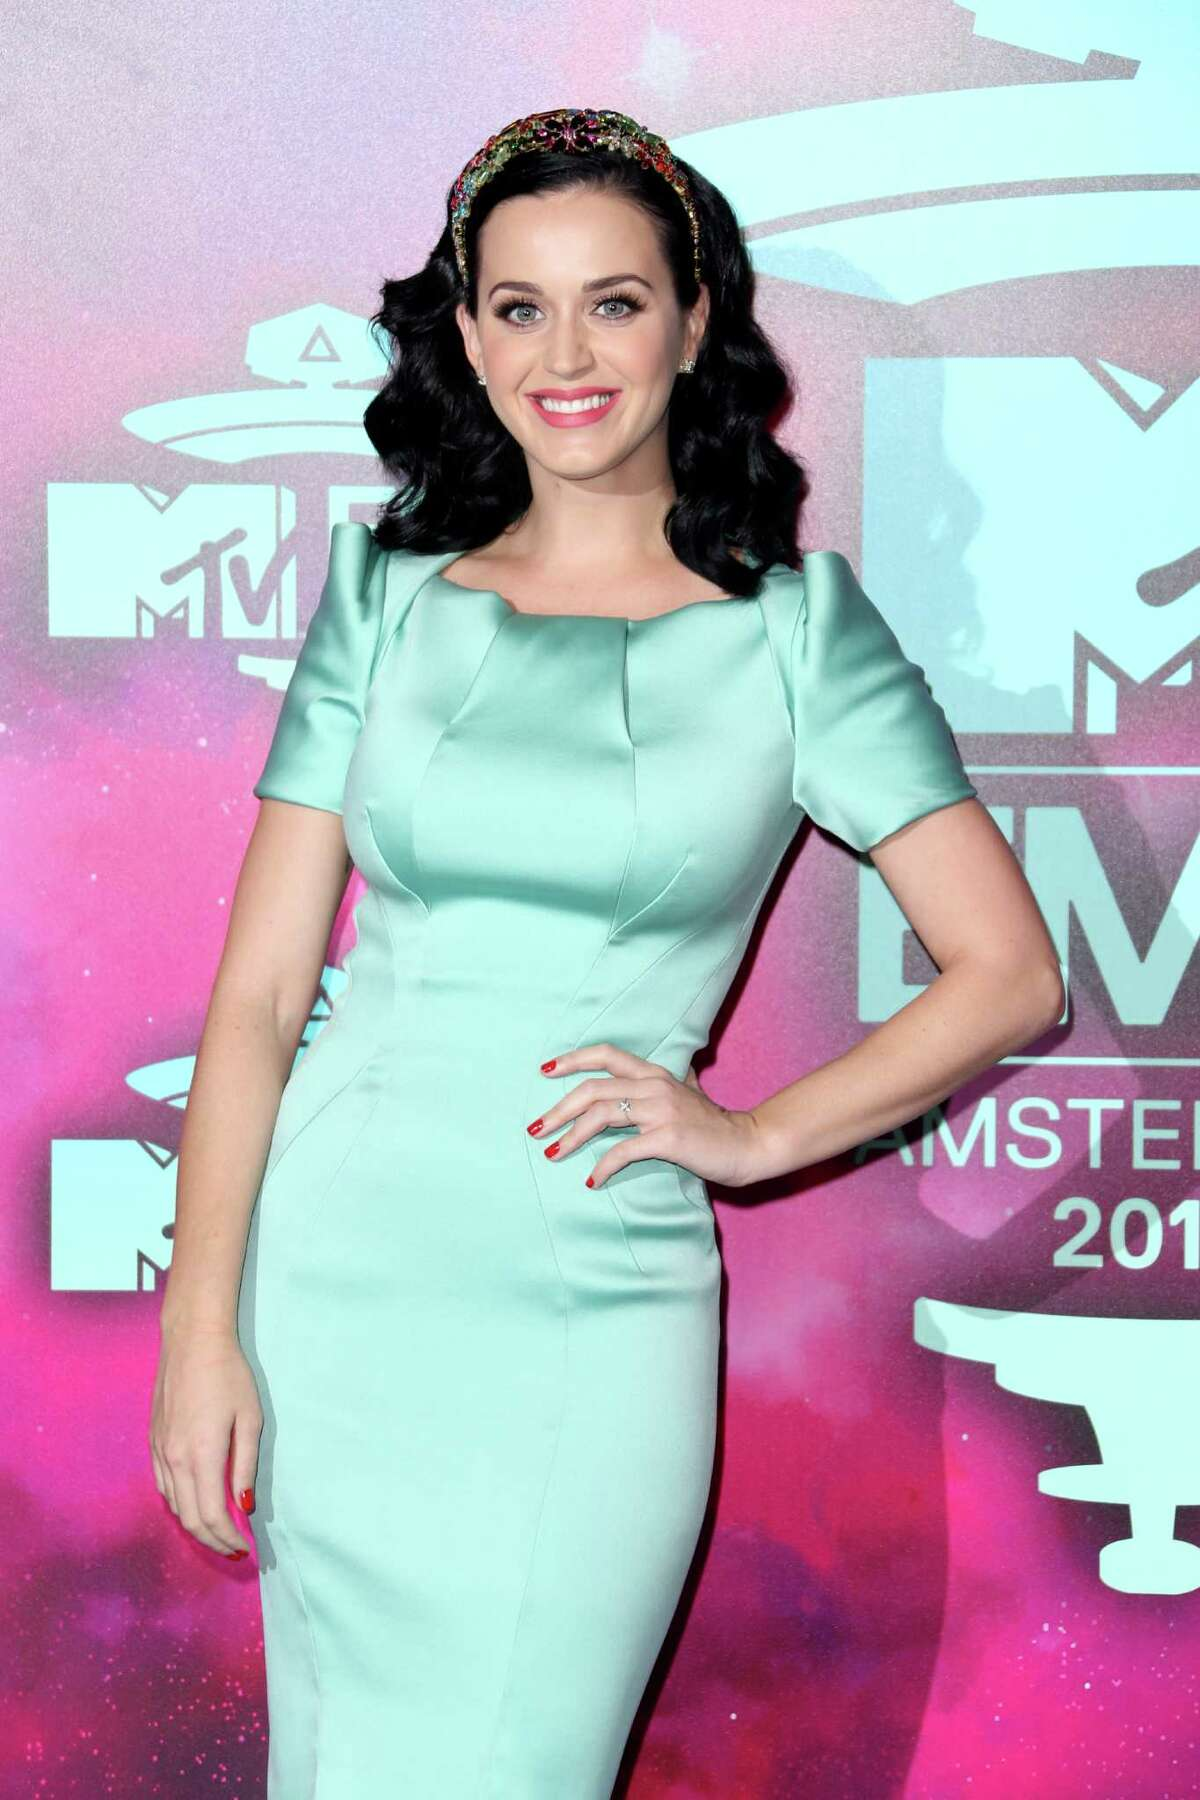 """FILE - In this Nov. 10, 2013 file photo, U.S. singer Katy Perry poses at the 2013 MTV Europe Music Awards, in Amsterdam, Netherlands, Perry will kick off the Nov. 24 American Music Awards with a performance of her new single ?""""Unconditionally.?"""" (Photo by Joel Ryan/Invision/AP, File) ORG XMIT: NYET216"""